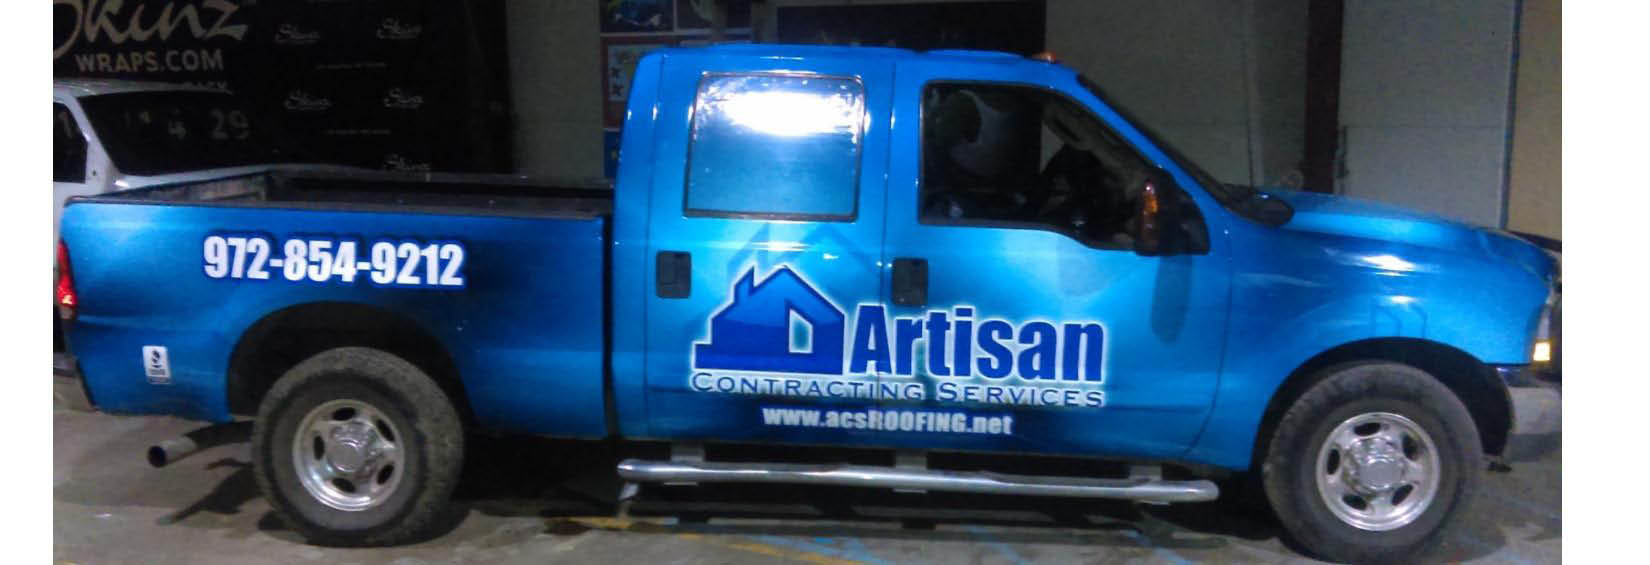 artisan-contracting-services-banner